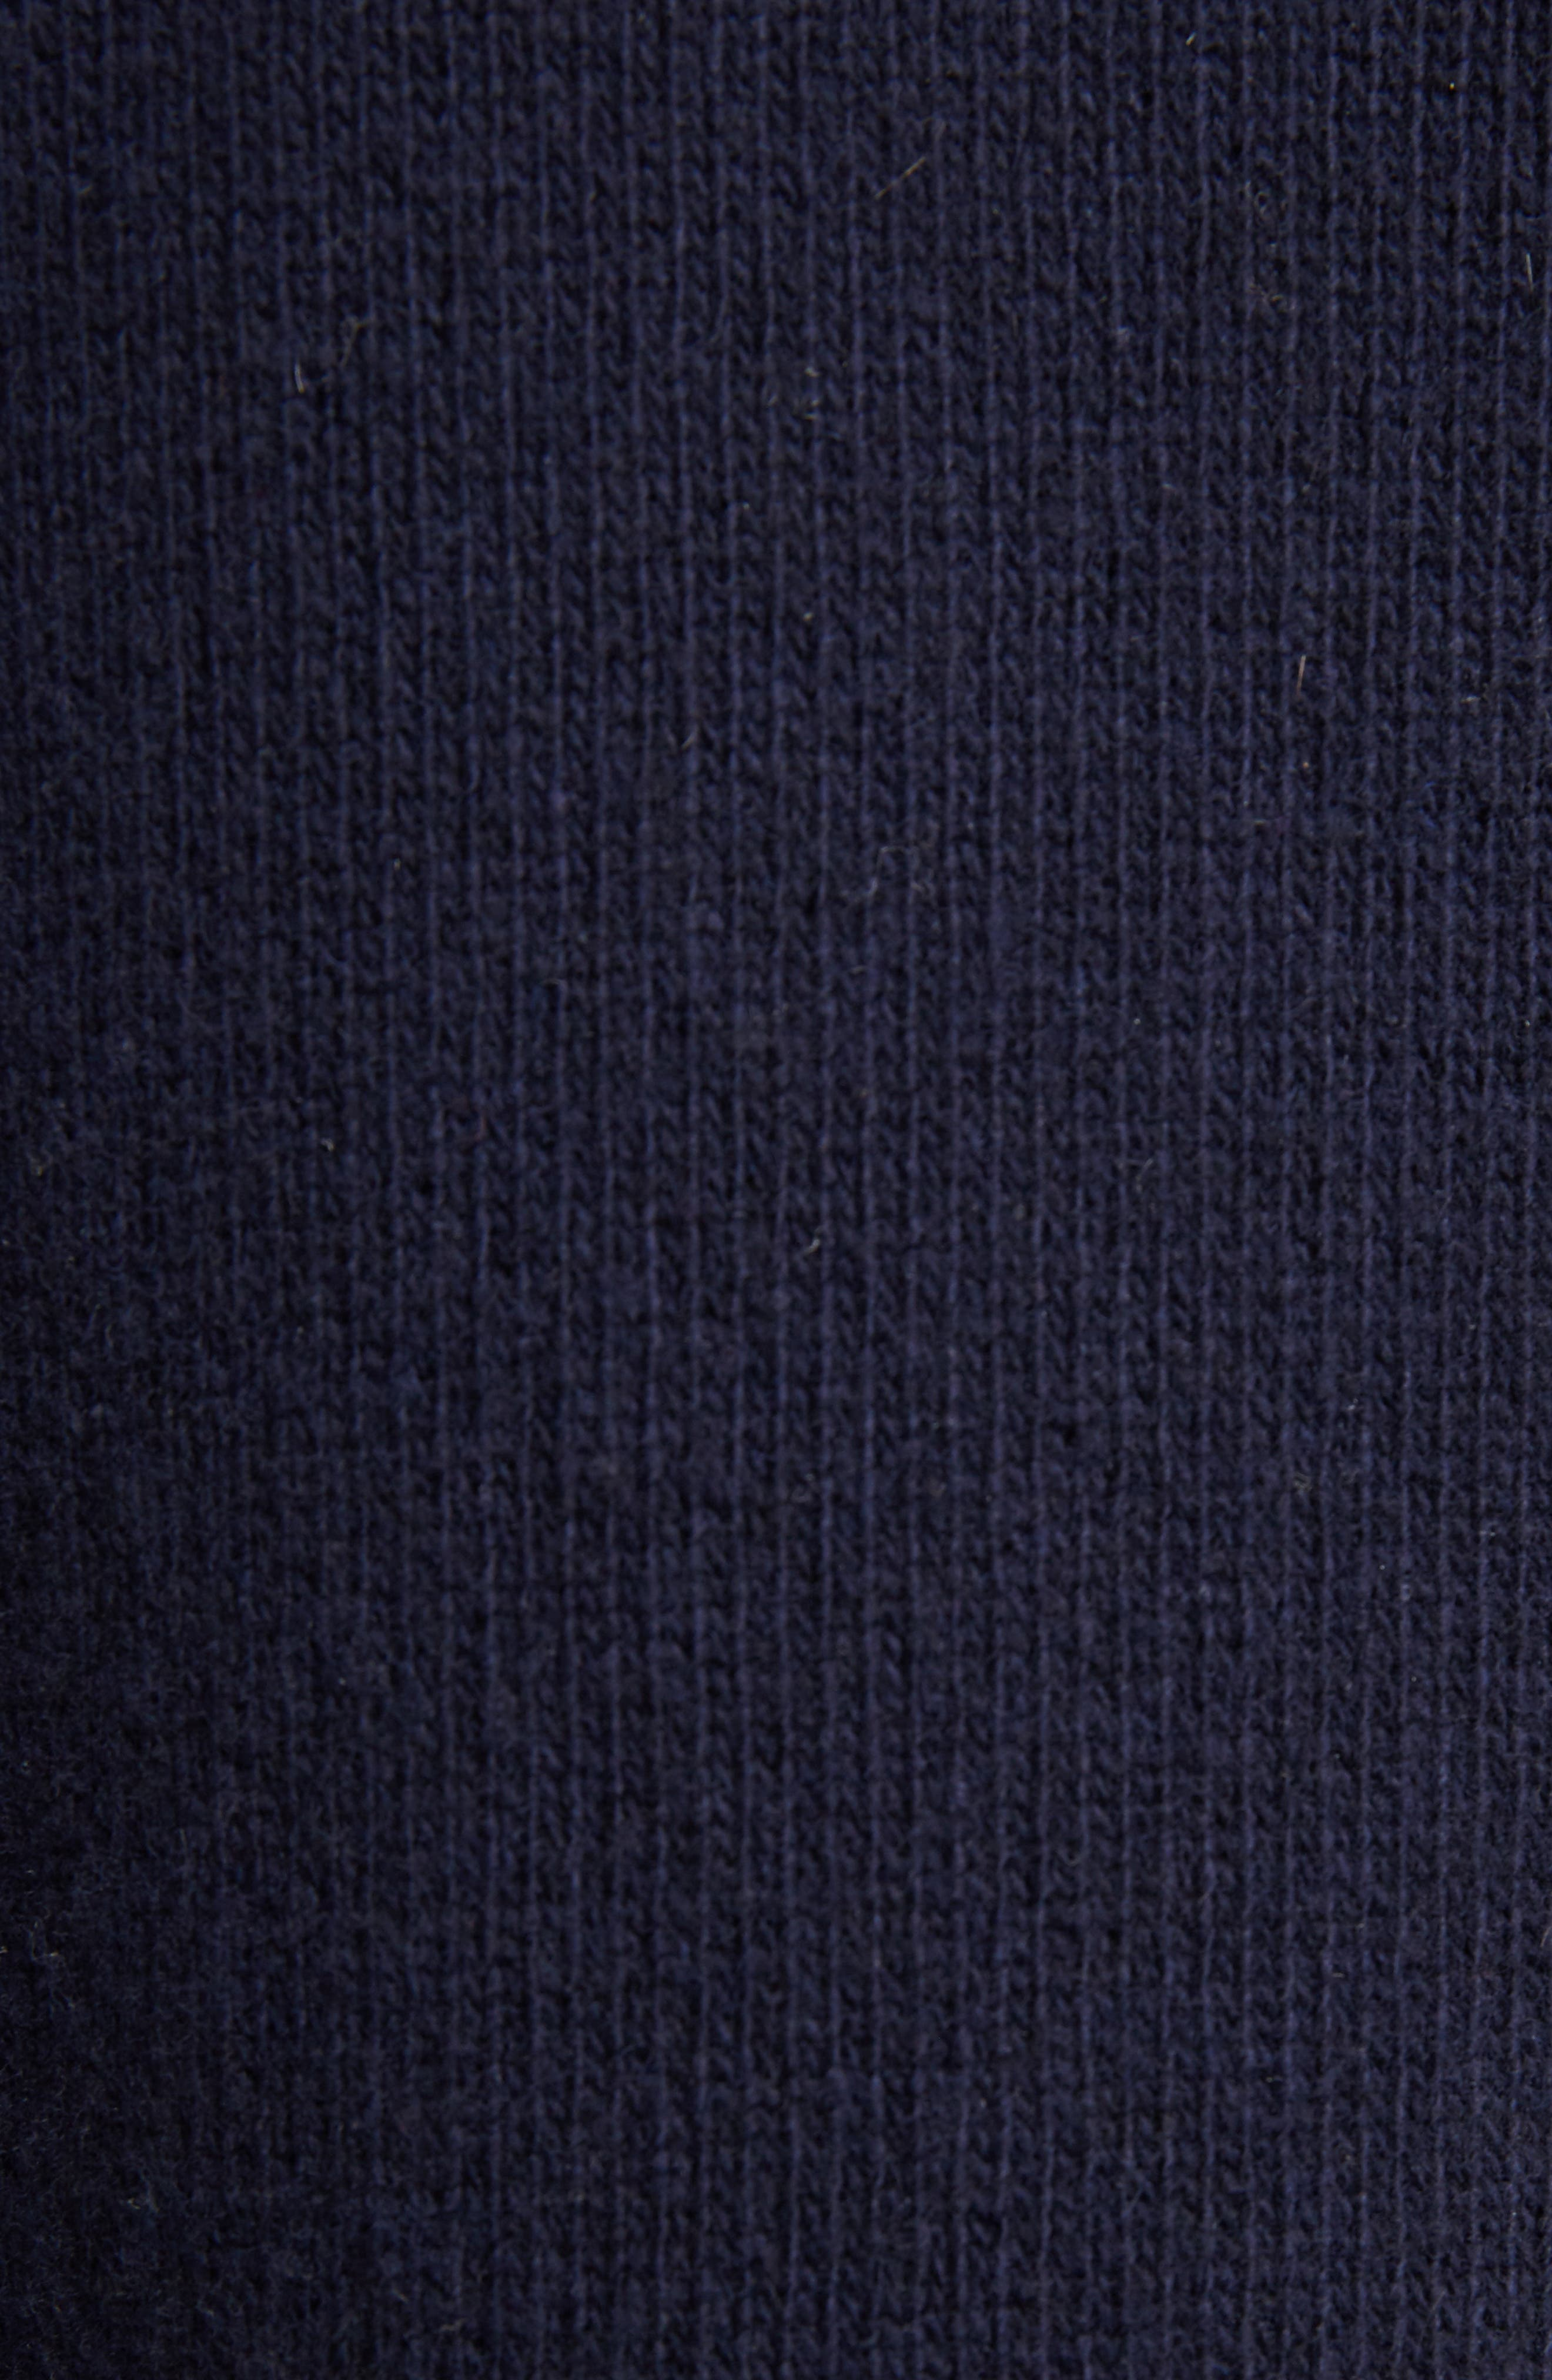 Guipure Lace Detail Wool & Cashmere Sweater,                             Alternate thumbnail 5, color,                             Iconic Navy